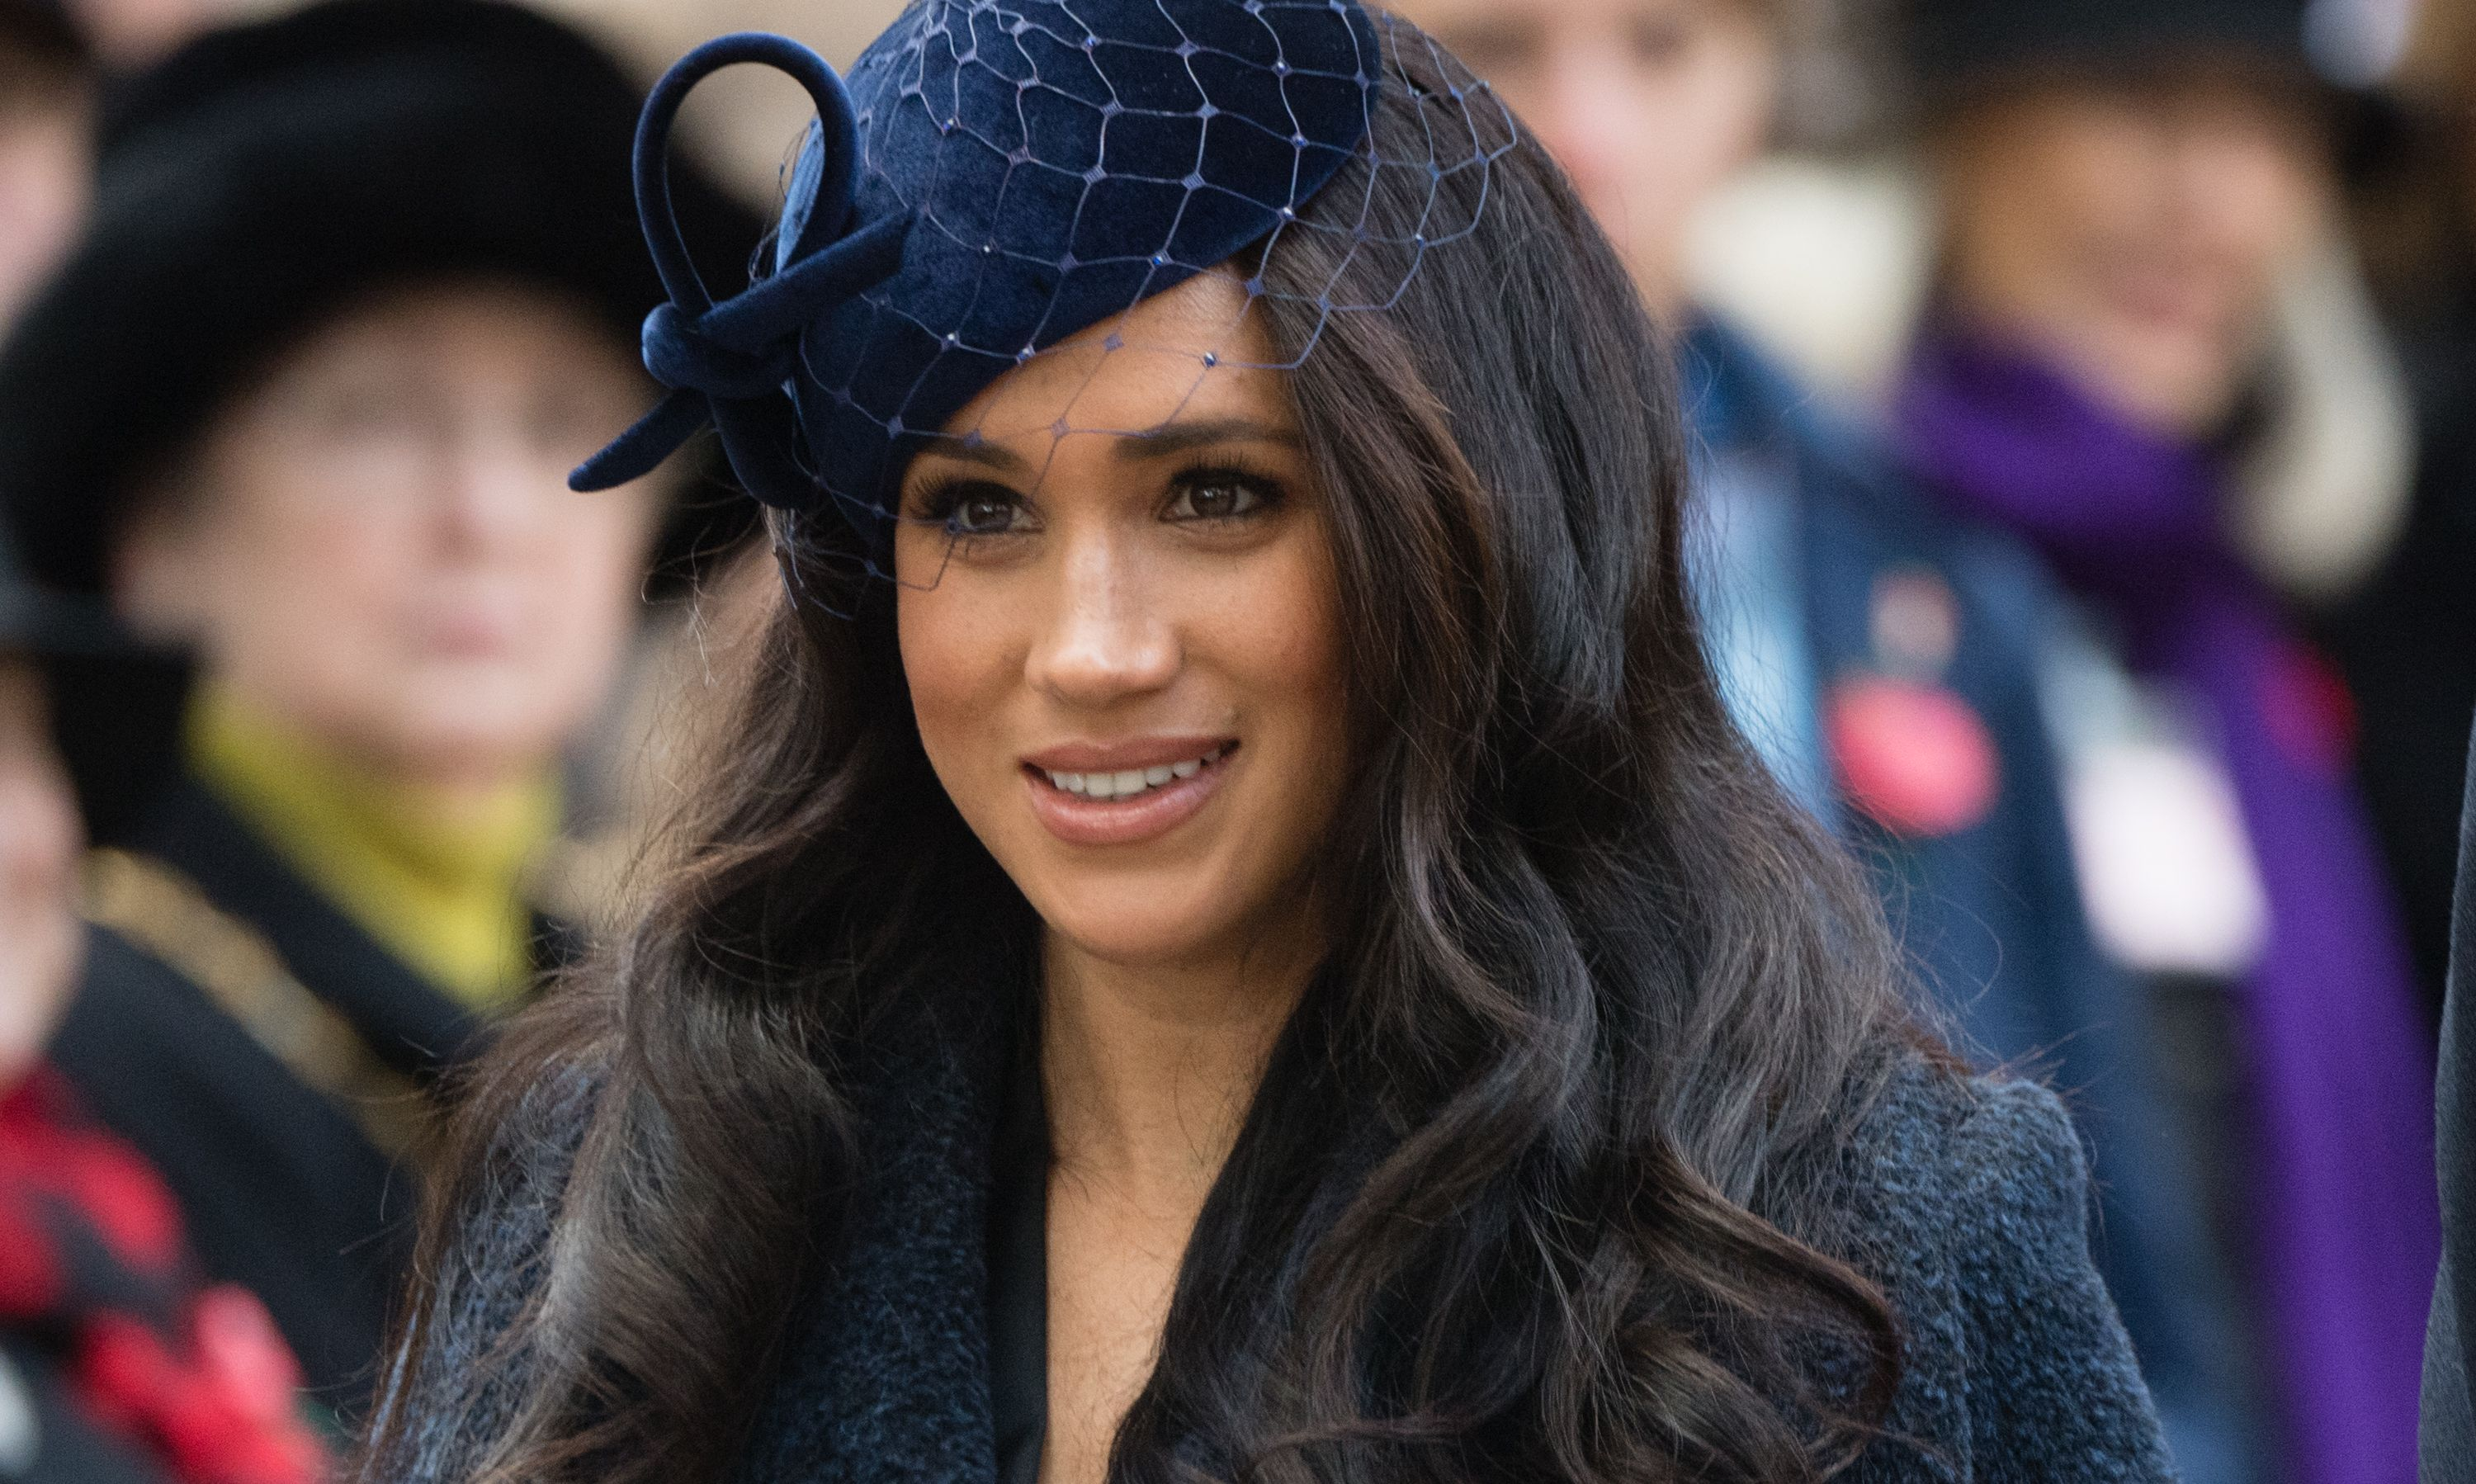 Meghan Markle Had a Super Relatable Makeup Mishap Yesterday